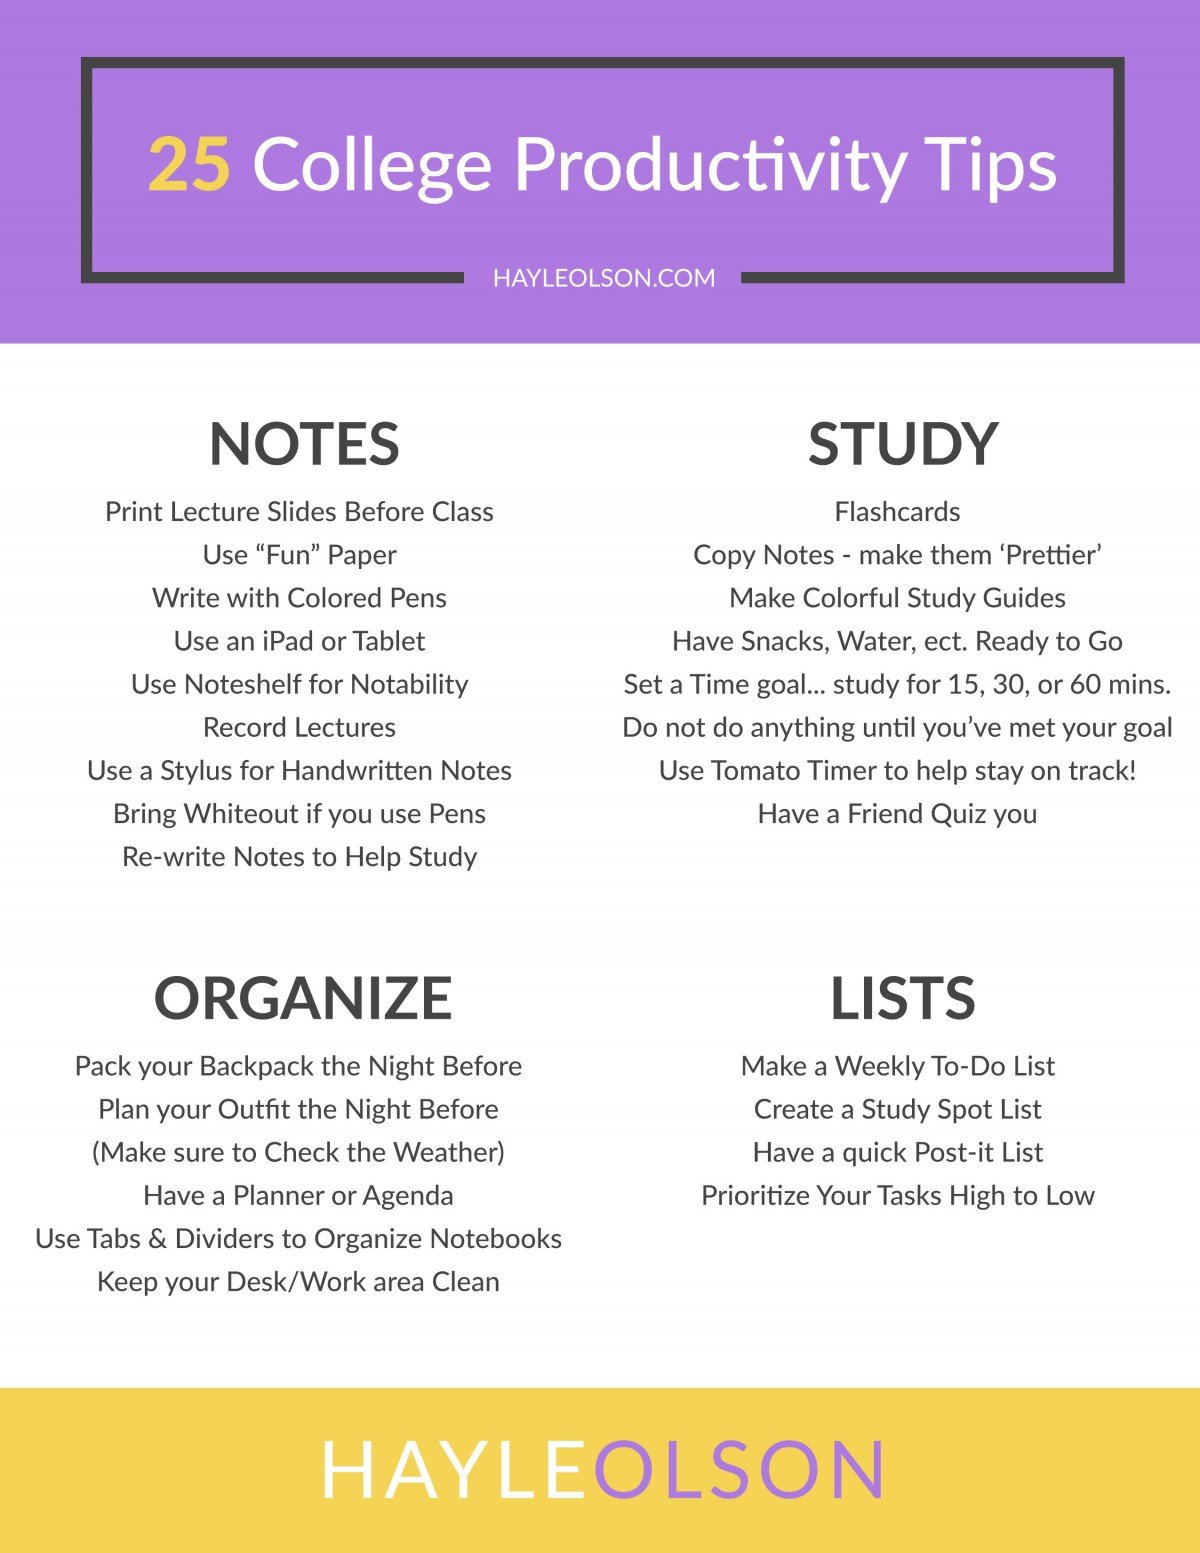 25 college productivity tips printable hayle olson 25 college productivity tips college tips hayle olson hayleolson com